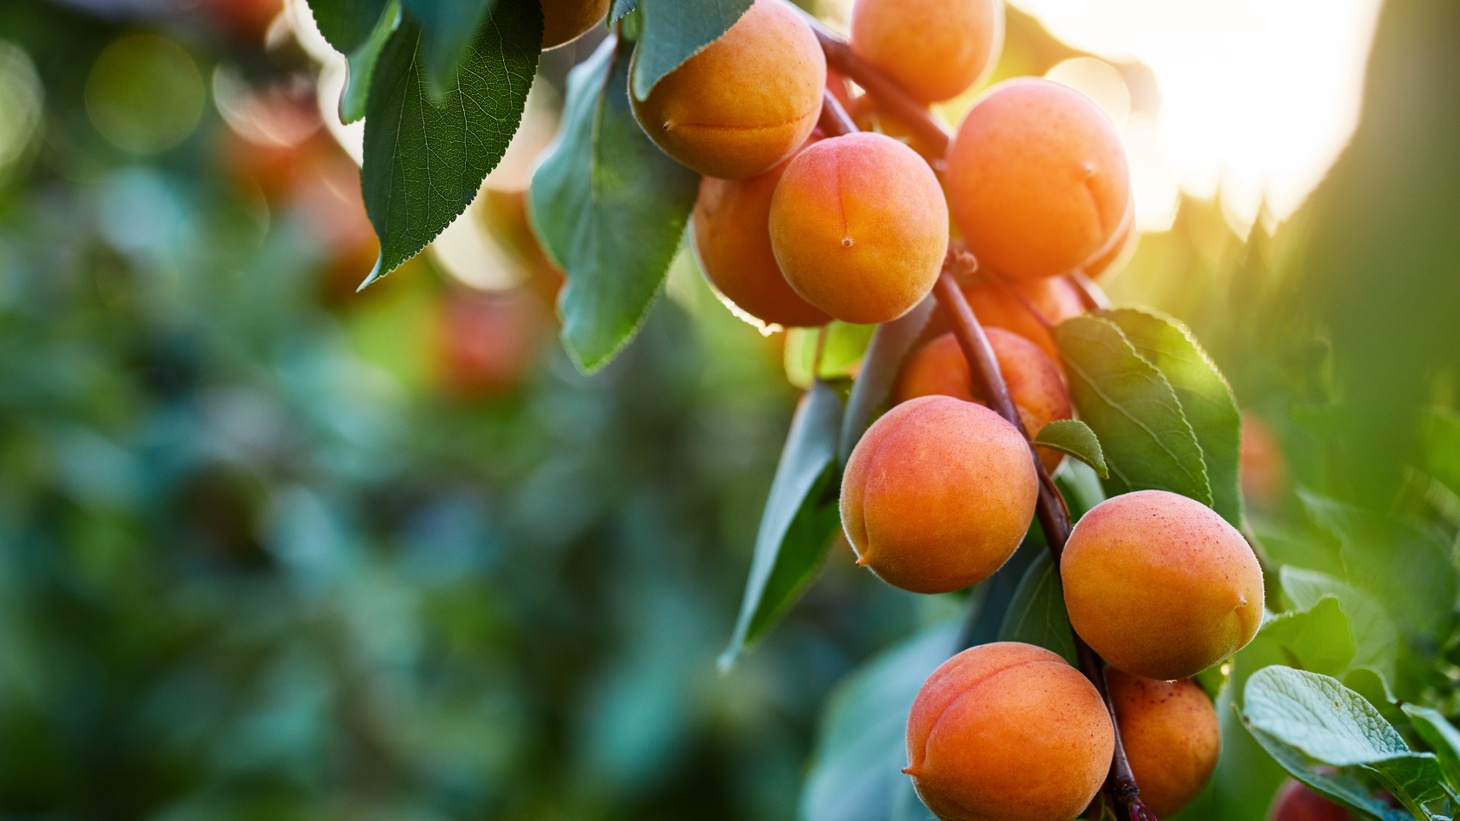 Apricot kernels can be toxic for a small child, but can also be used as medicine for a sick adult, and a secret source of flavor for a cook.